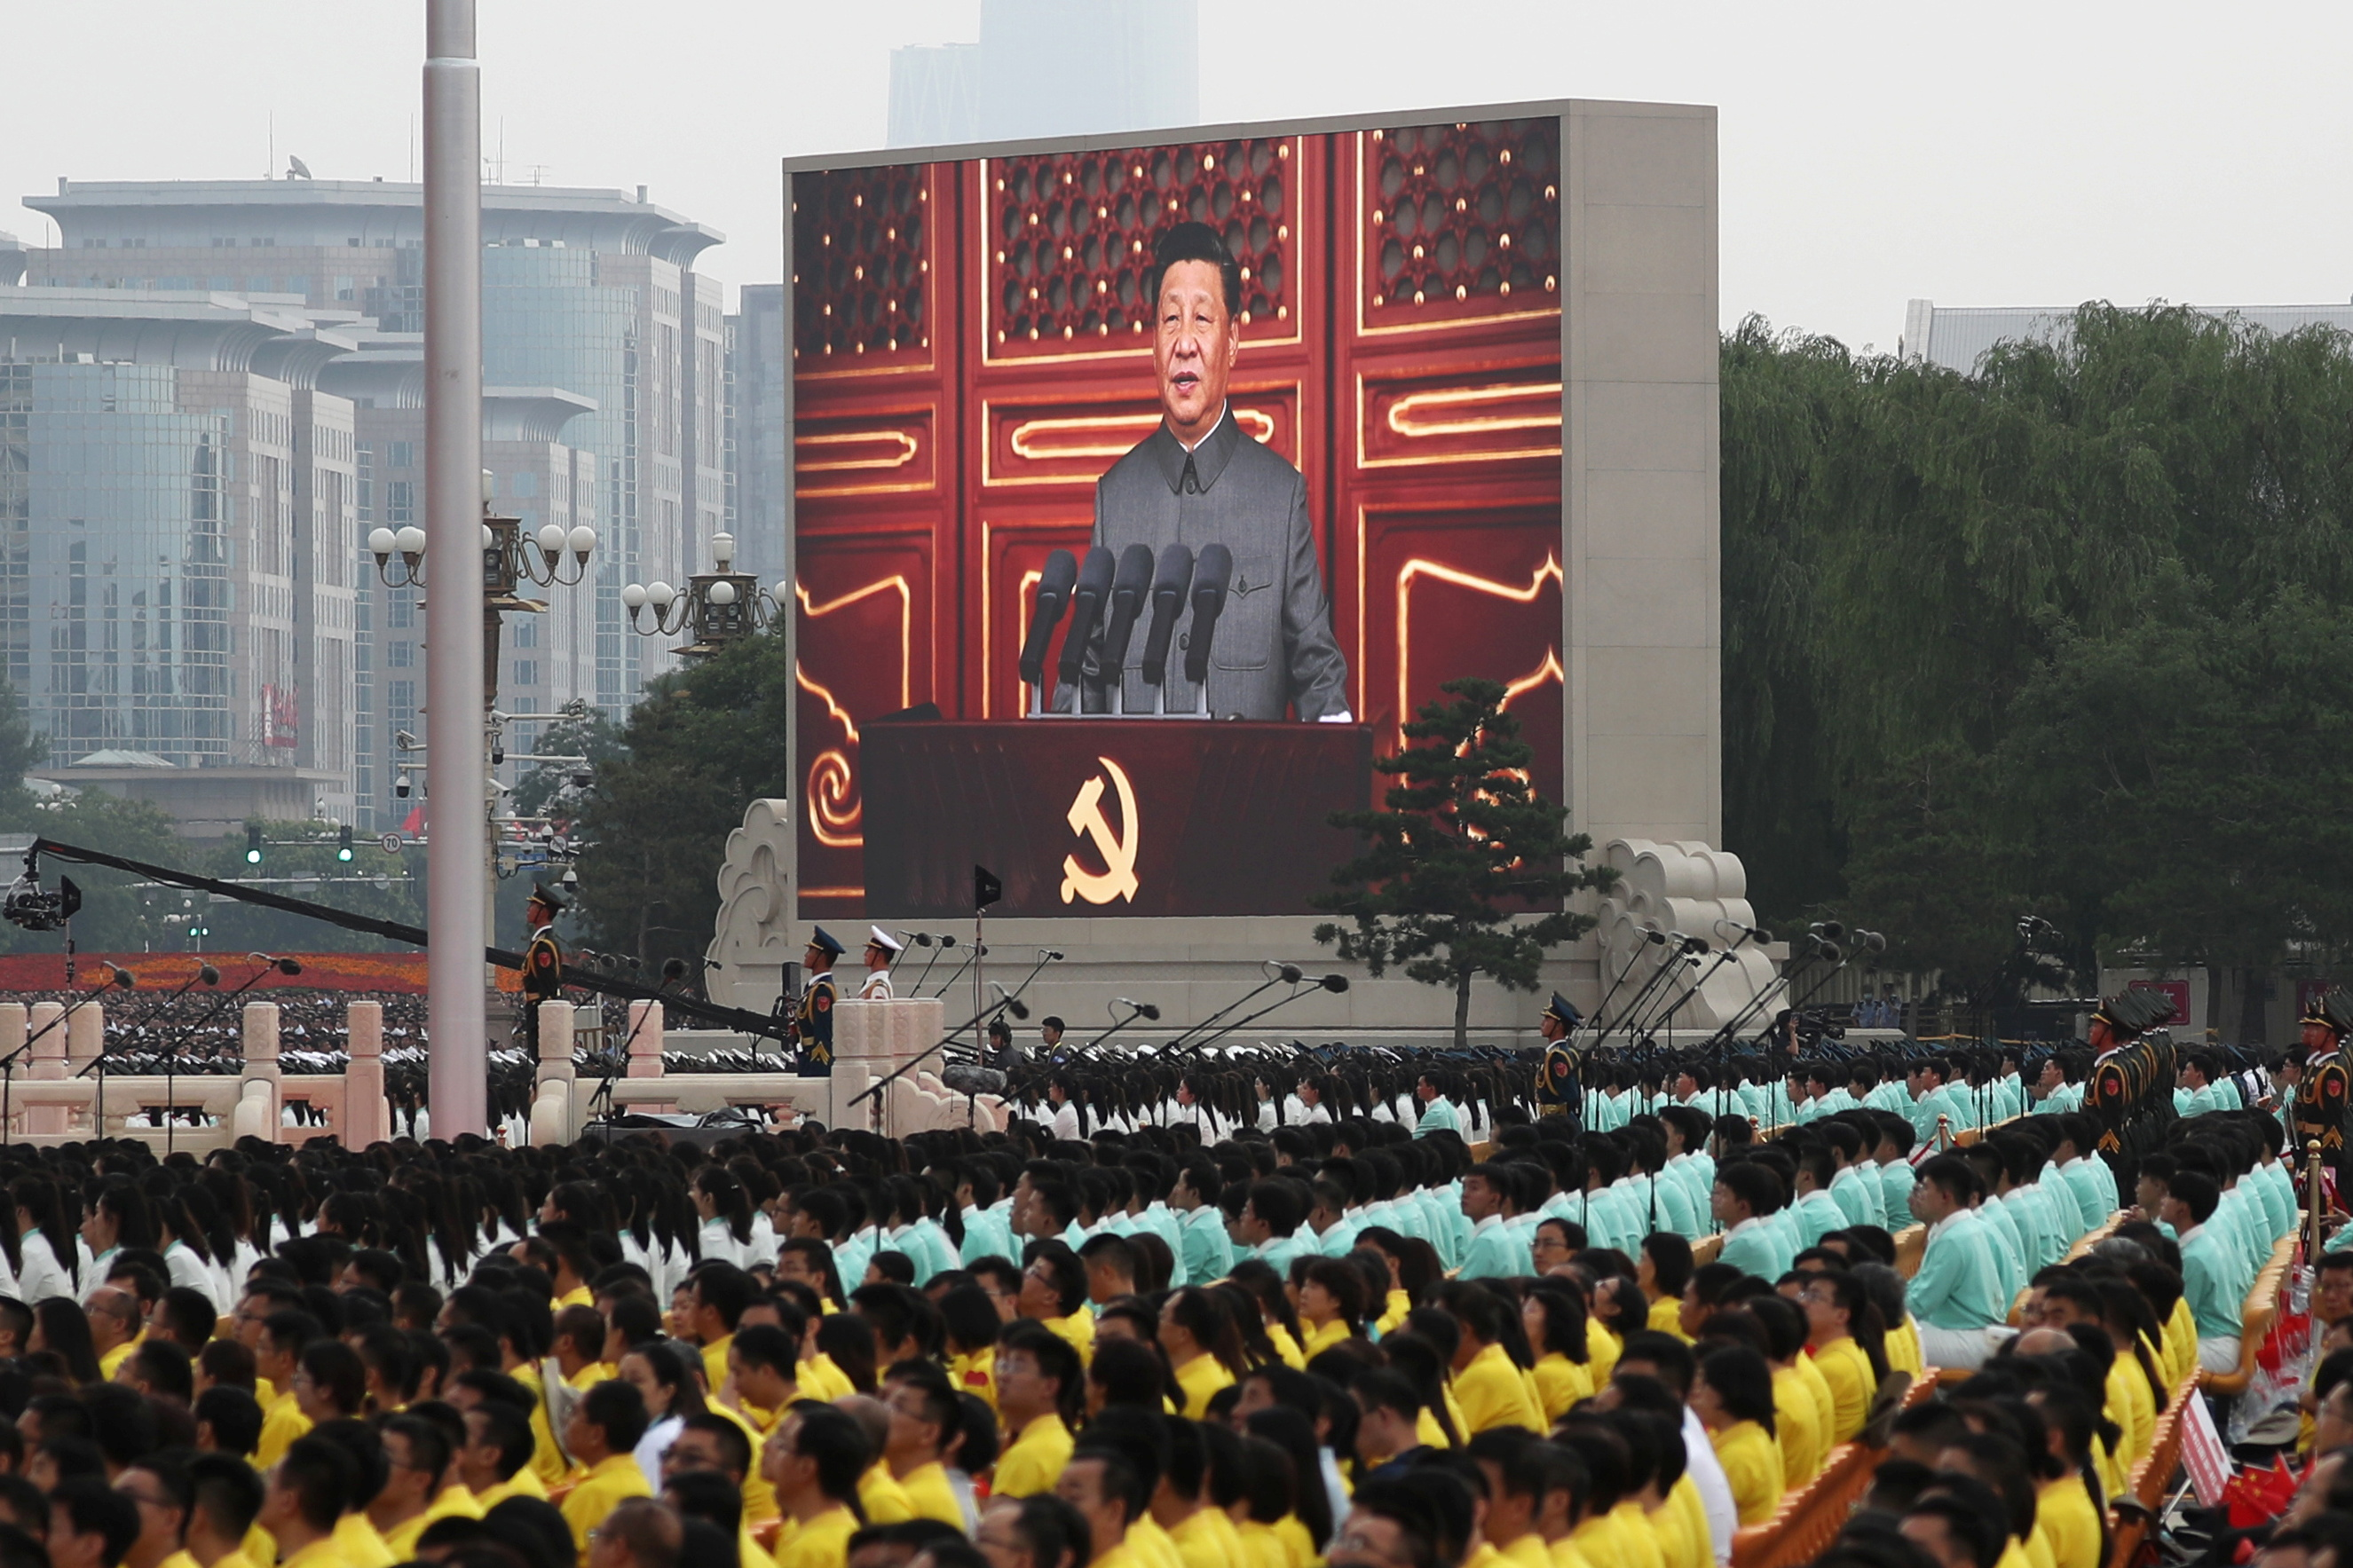 Chinese President Xi Jinping is seen on a giant screen as he delivers a speech at the event marking the 100th founding anniversary of the Communist Party of China, on Tiananmen Square in Beijing, China July 1, 2021. REUTERS/Carlos Garcia Rawlins